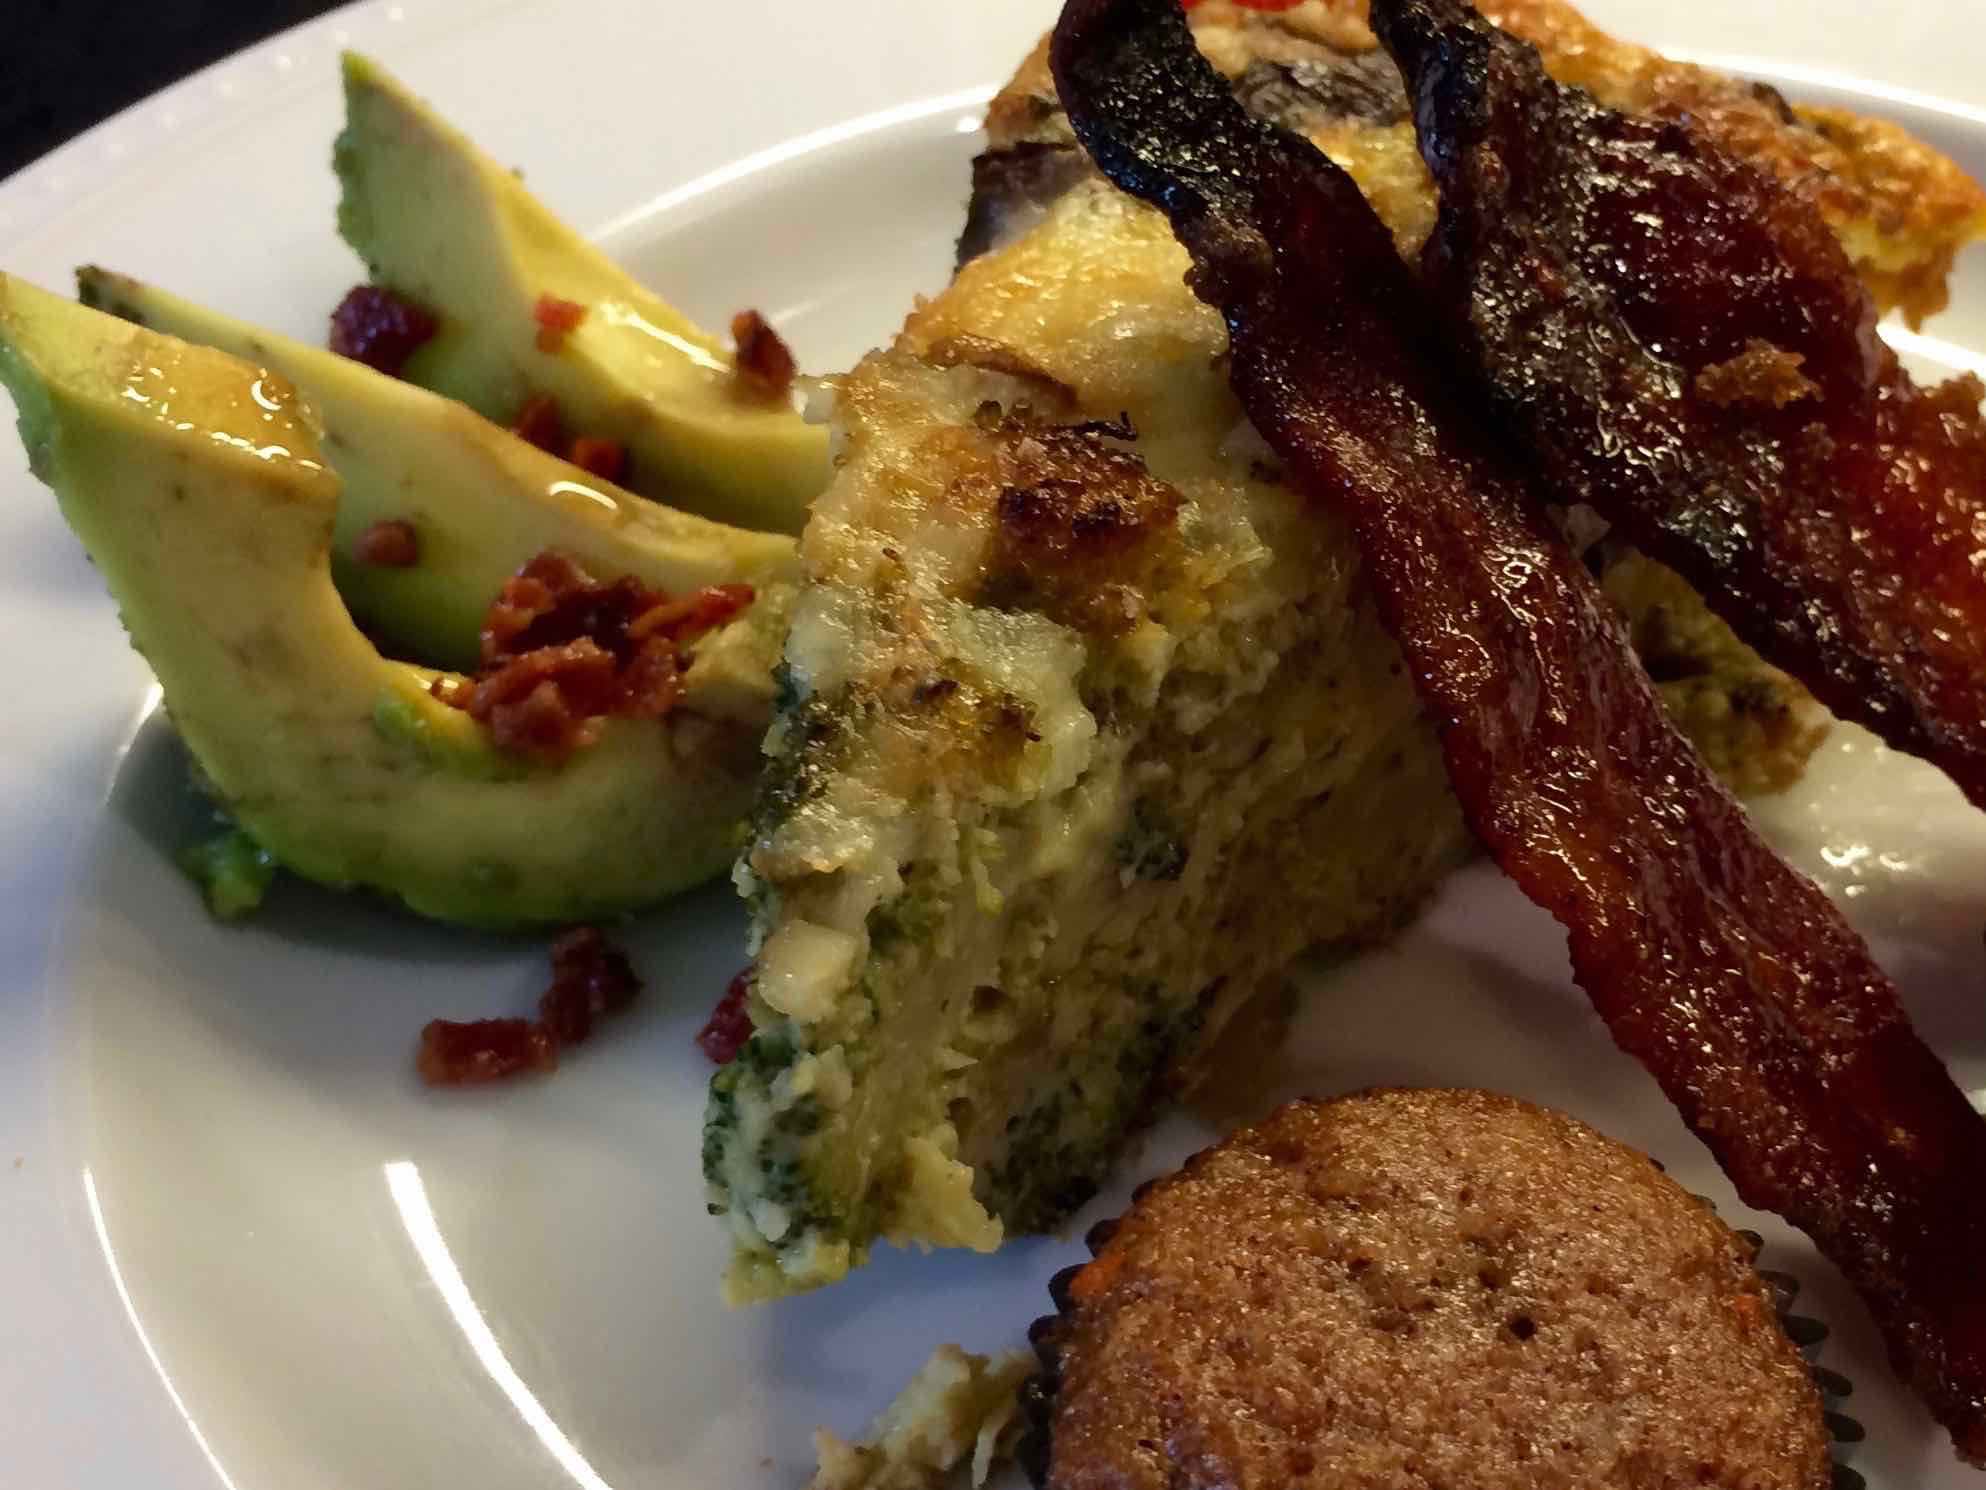 Breakfast at Coach Stop Inn - vegetable frittata with candied bacon and avocado